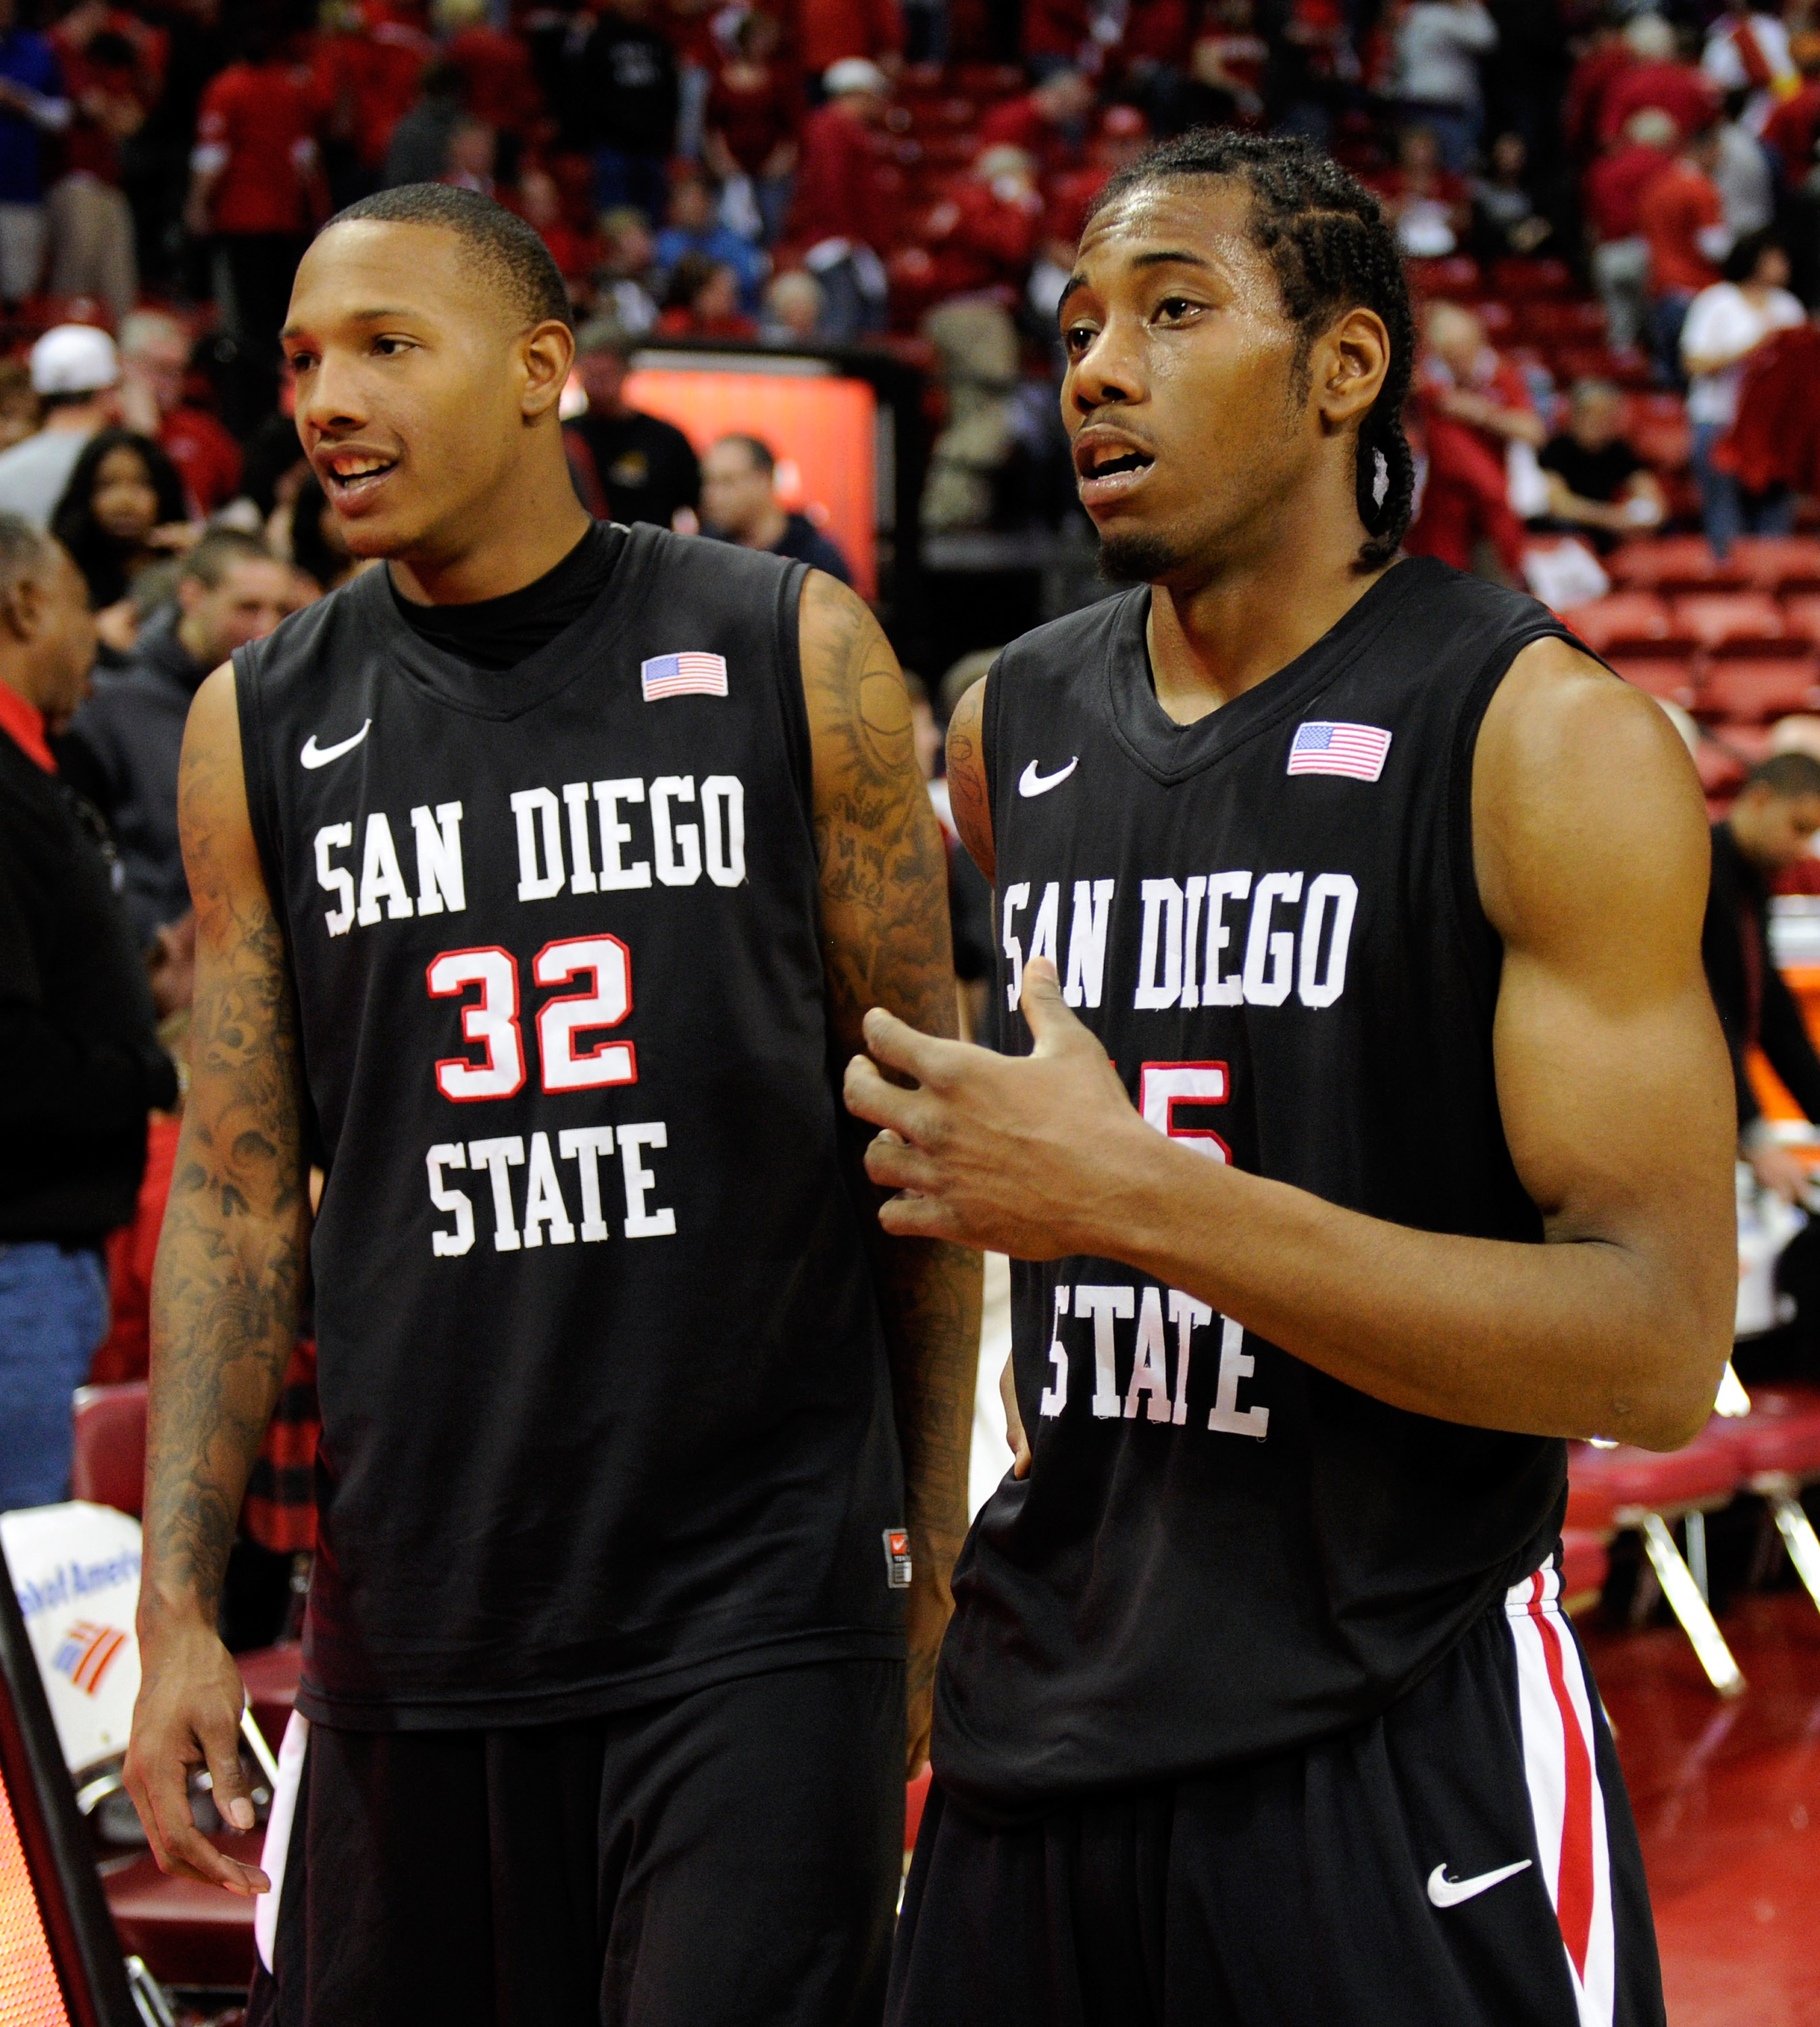 LAS VEGAS, NV - FEBRUARY 12:  Billy White #32 and and Kawhi Leonard #15 of the San Diego State Aztecs celebrate their 63-57 victory over the UNLV Rebels at the Thomas & Mack Center February 12, 2011 in Las Vegas, Nevada.  (Photo by Ethan Miller/Getty Imag